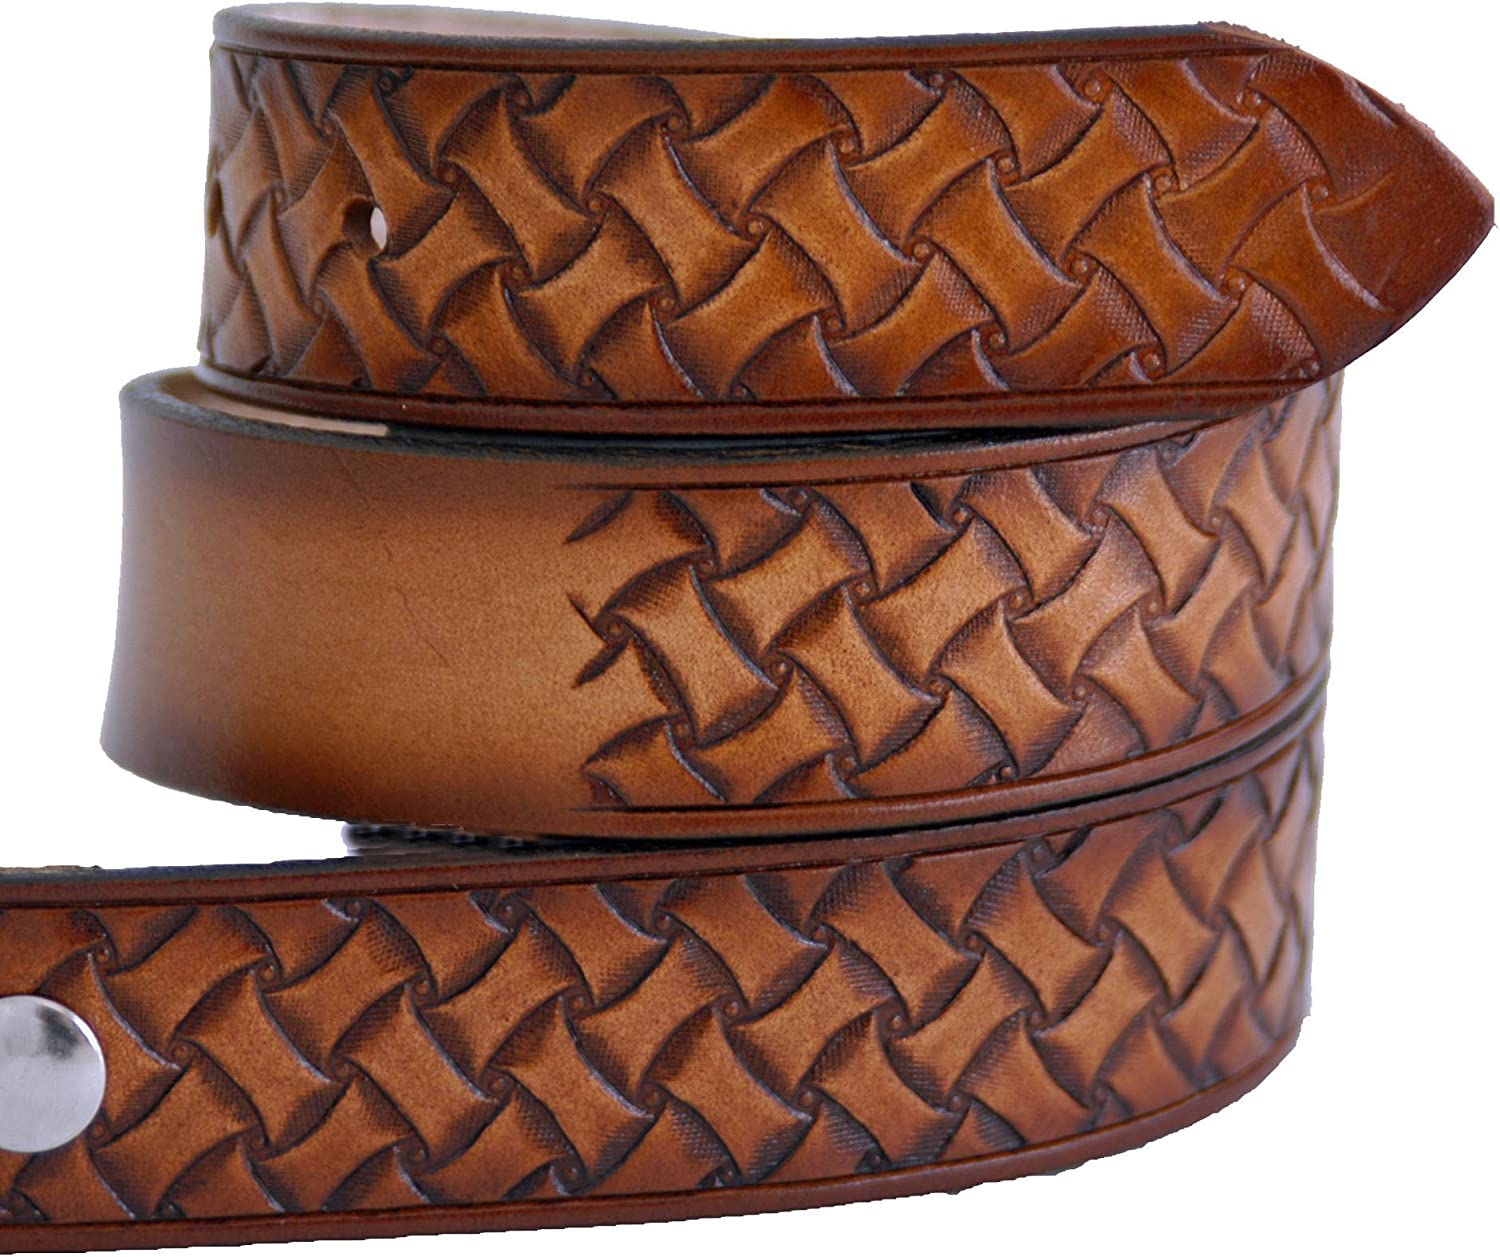 High Springs Leather Childrens Name Belt Weave Design Personalized